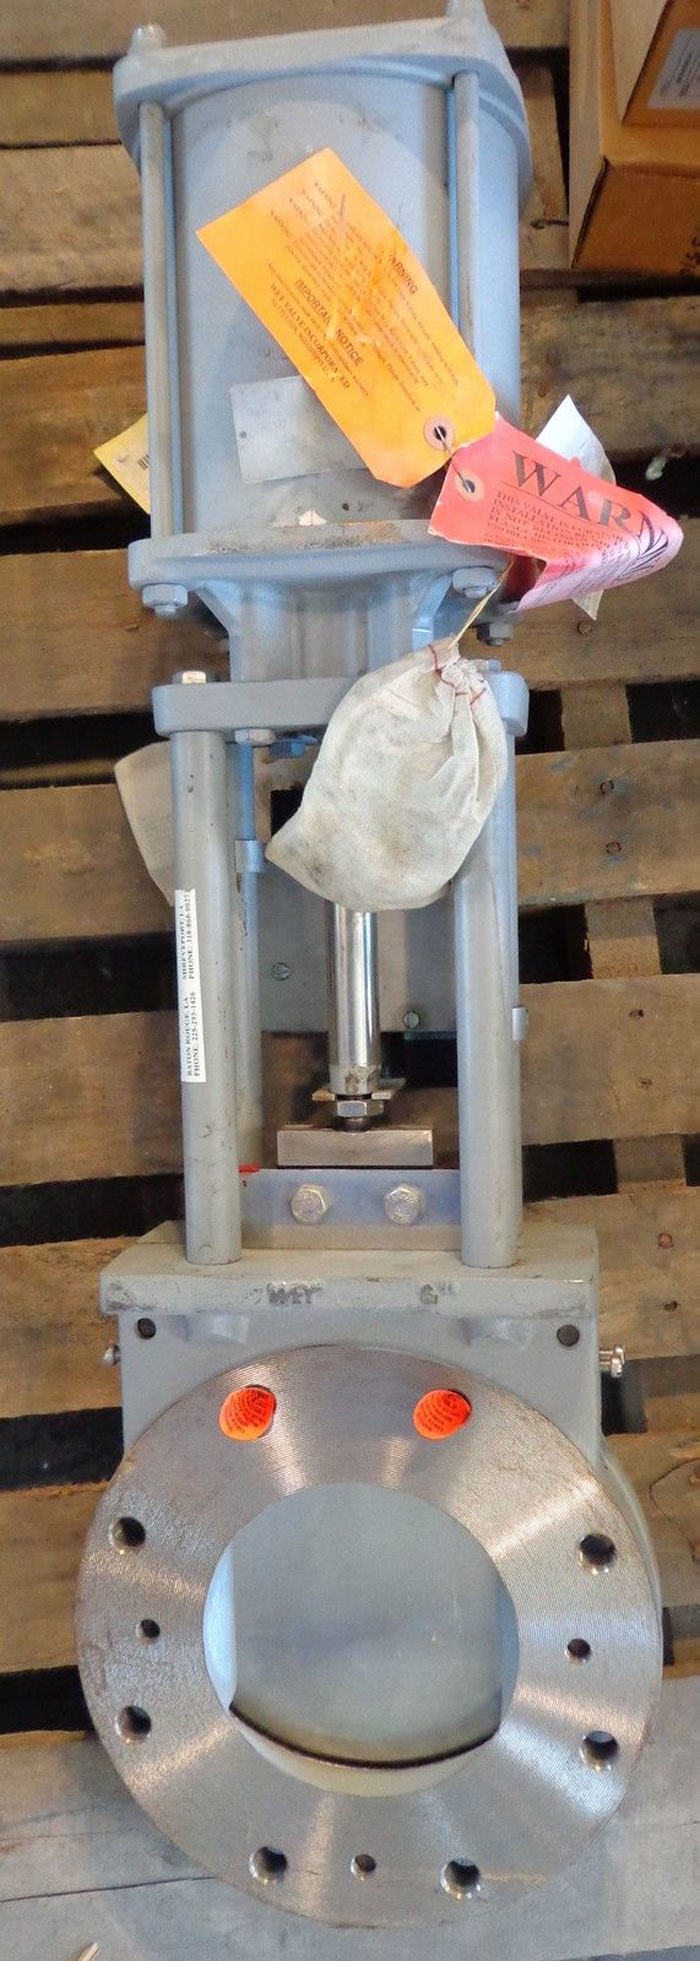 """WEY ACTUATED KNIFEGATE VALVE 6"""" NA1CB"""